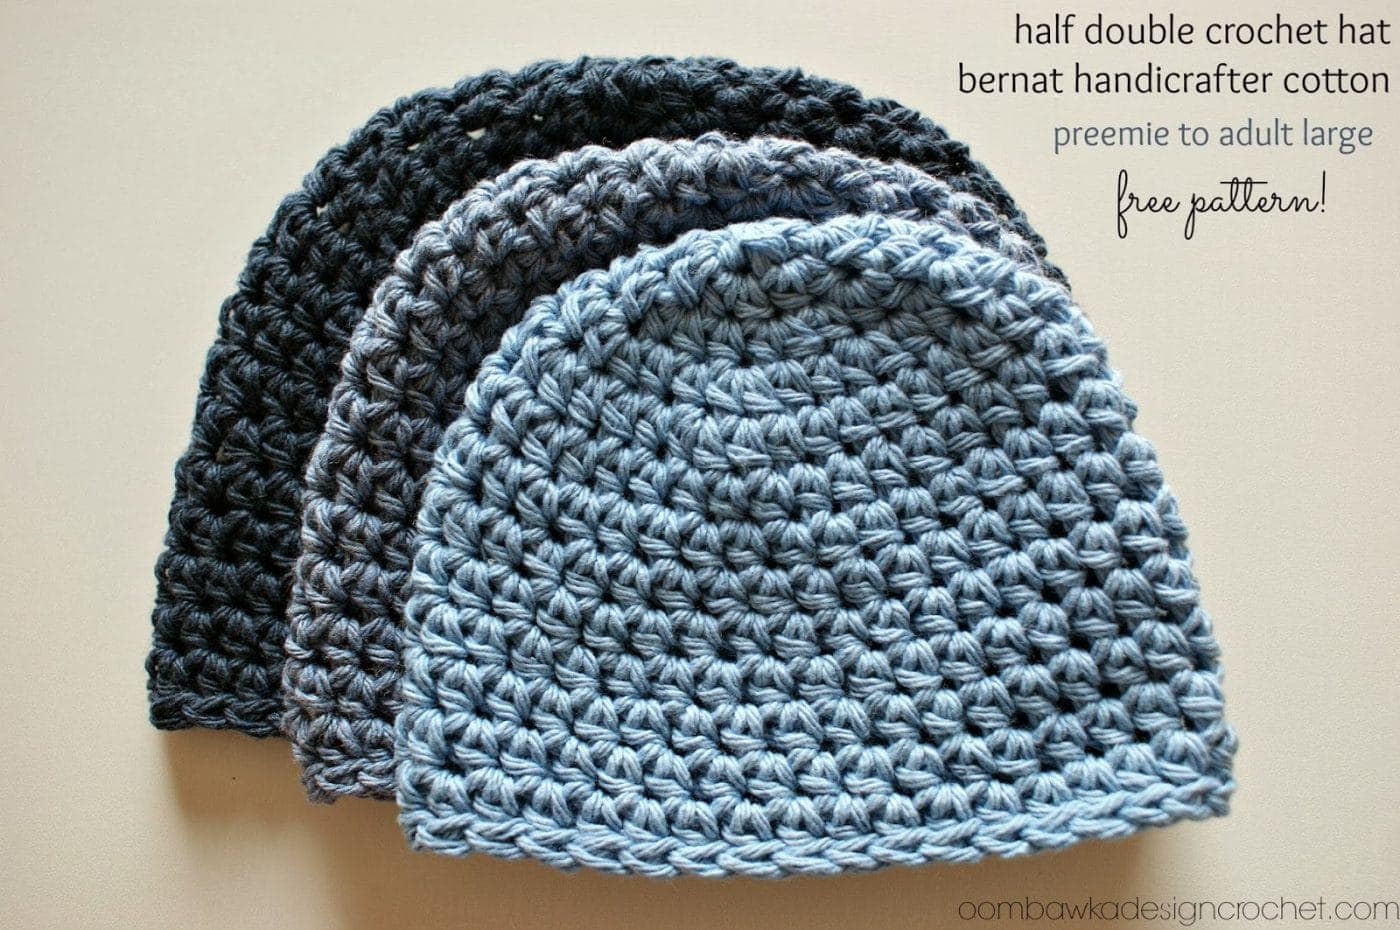 Crocheting Meaning : ... Double Crochet Hat Pattern #2 Free Pattern ? Oombawka Design Crochet